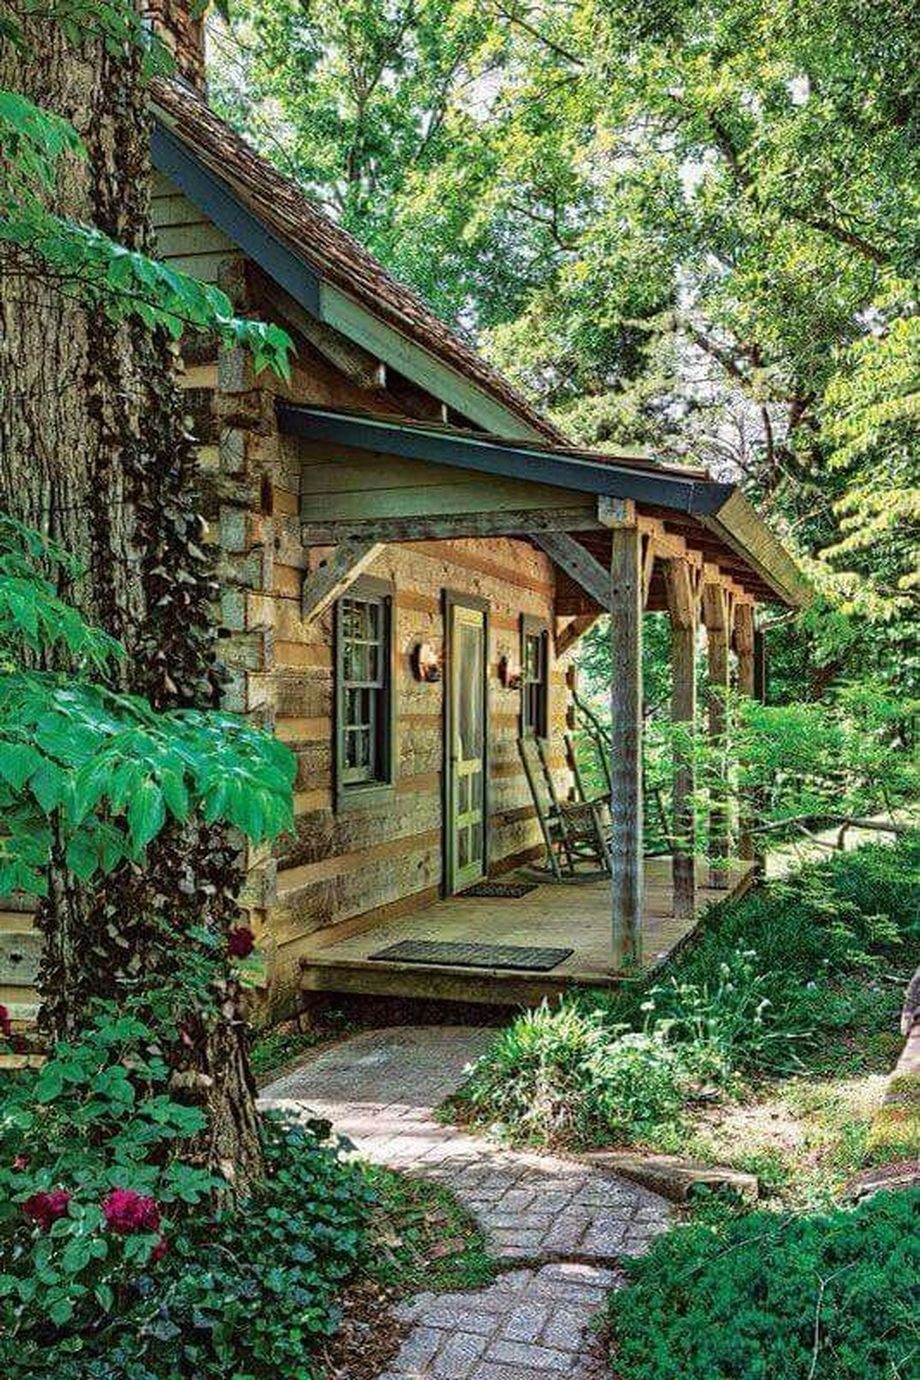 Amazing Cabins and Cottages from over the World 3